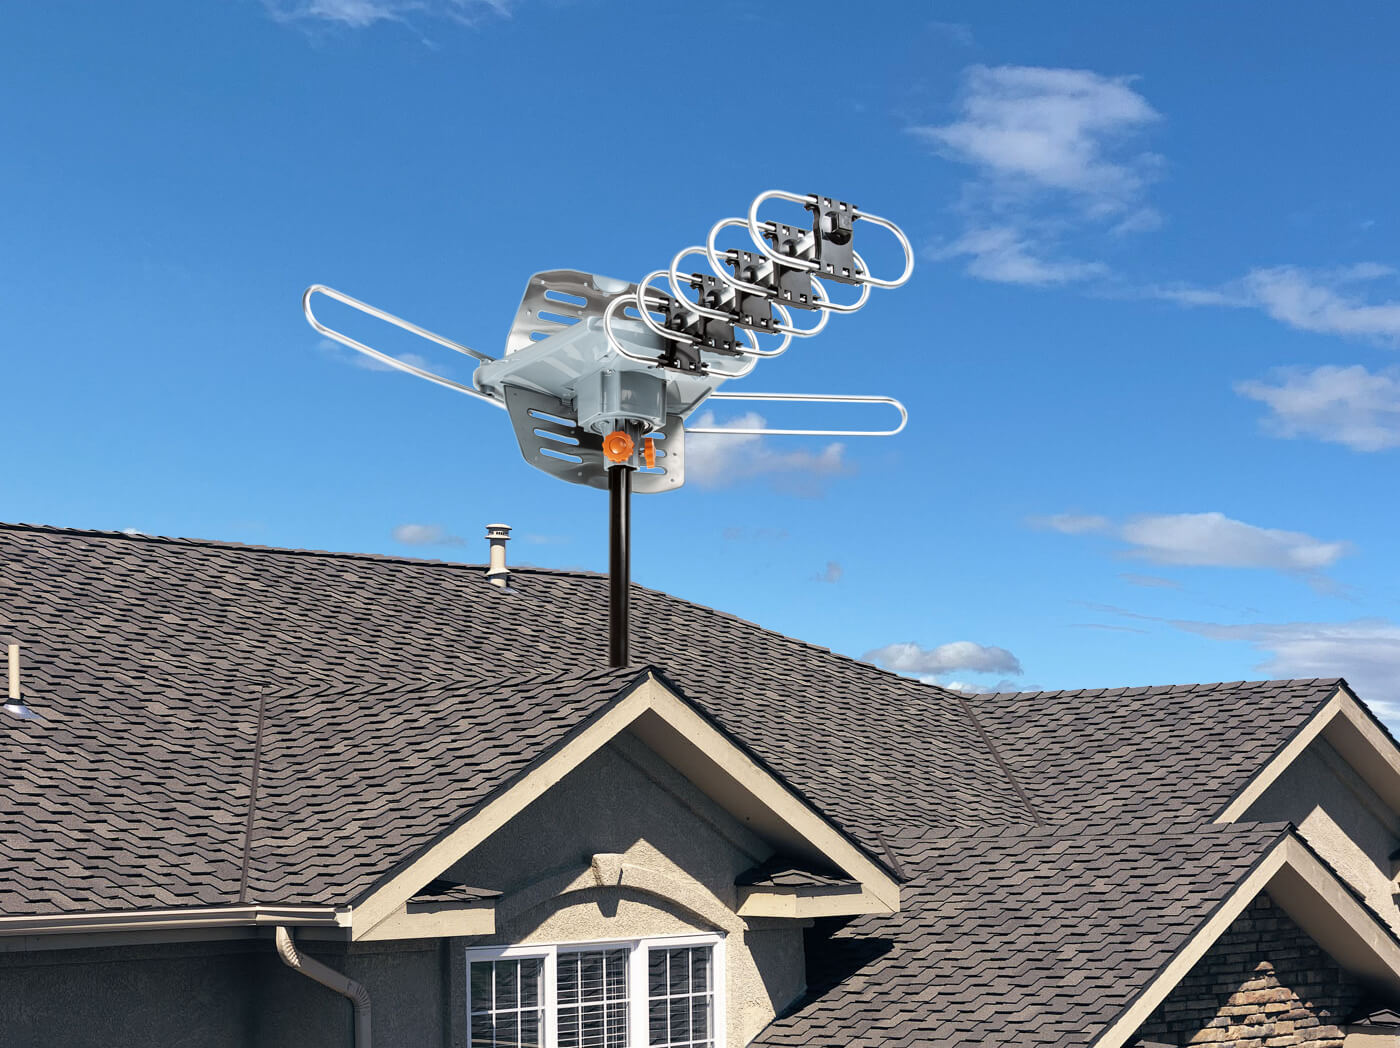 Outdoor antenna 5809 mounting onto the roof